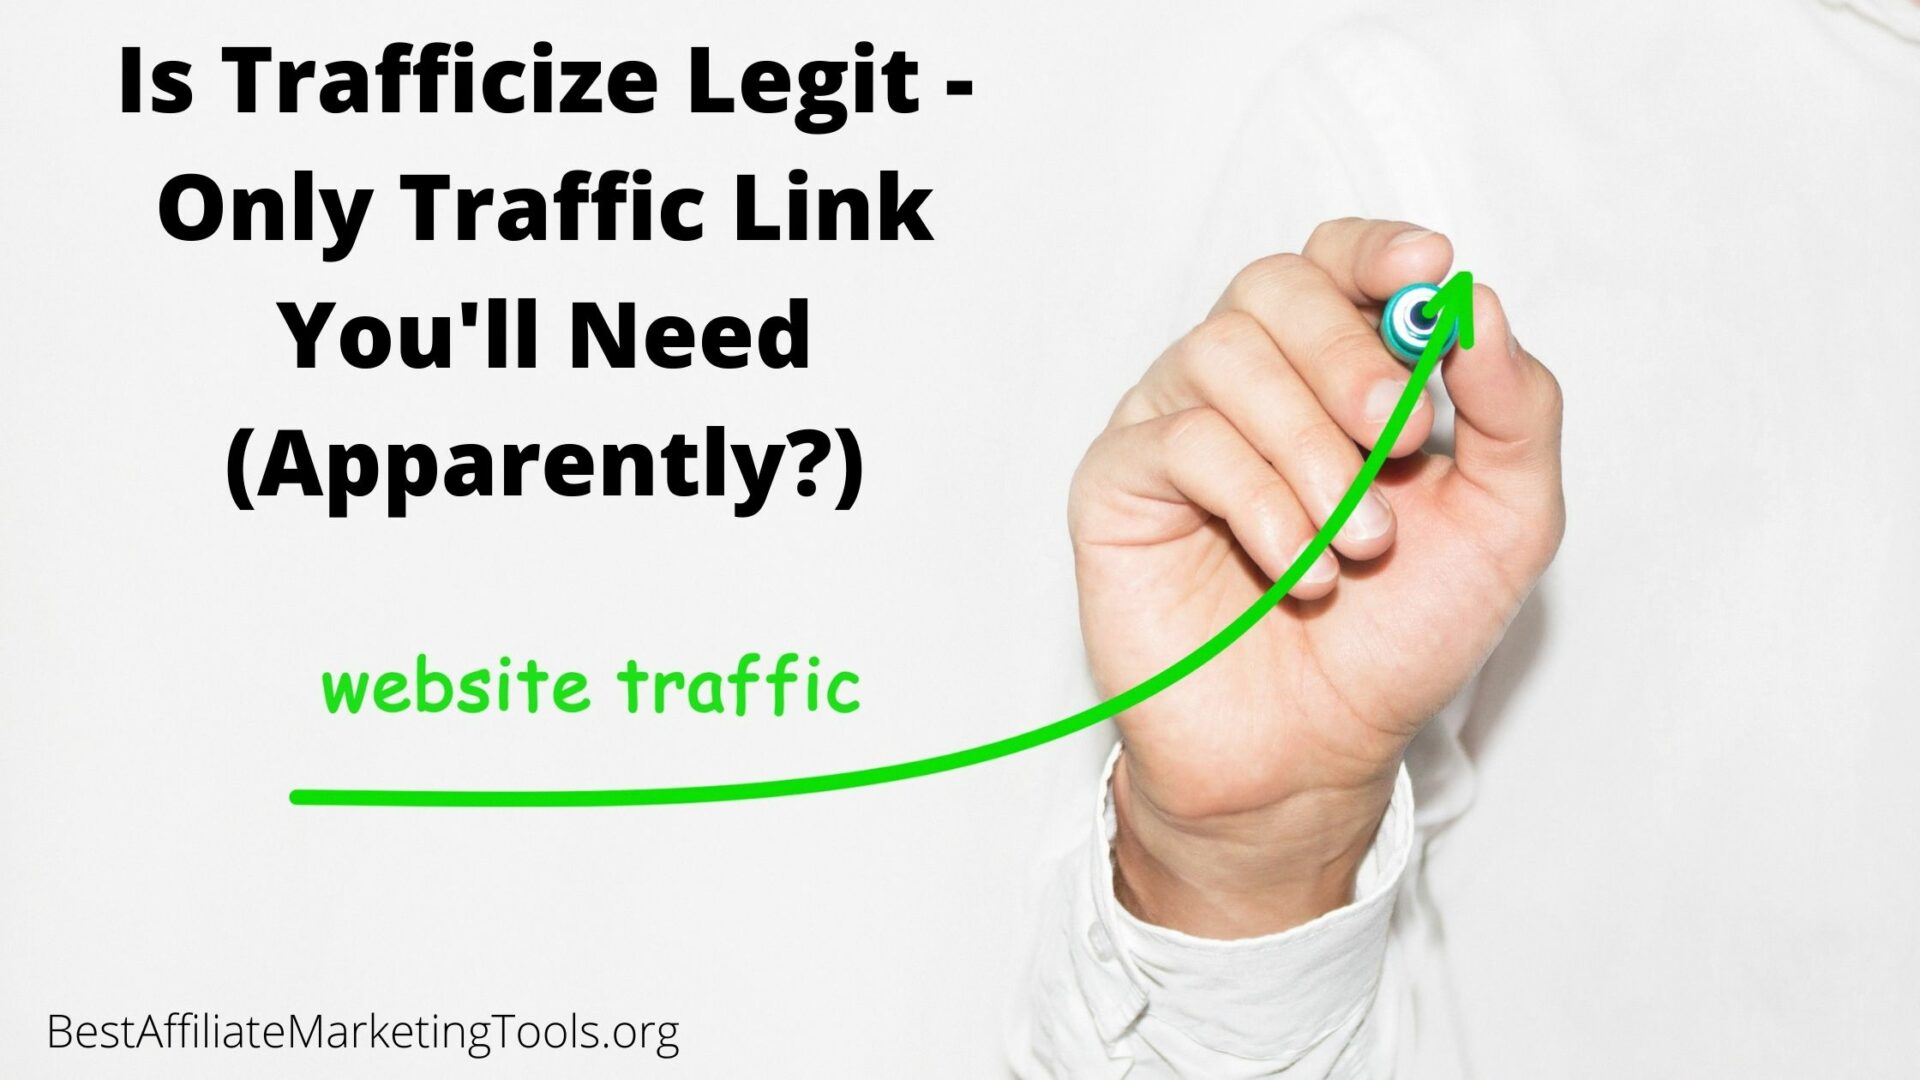 Is Trafficize Legit - Only Traffic Link You'll Need (Apparently_)